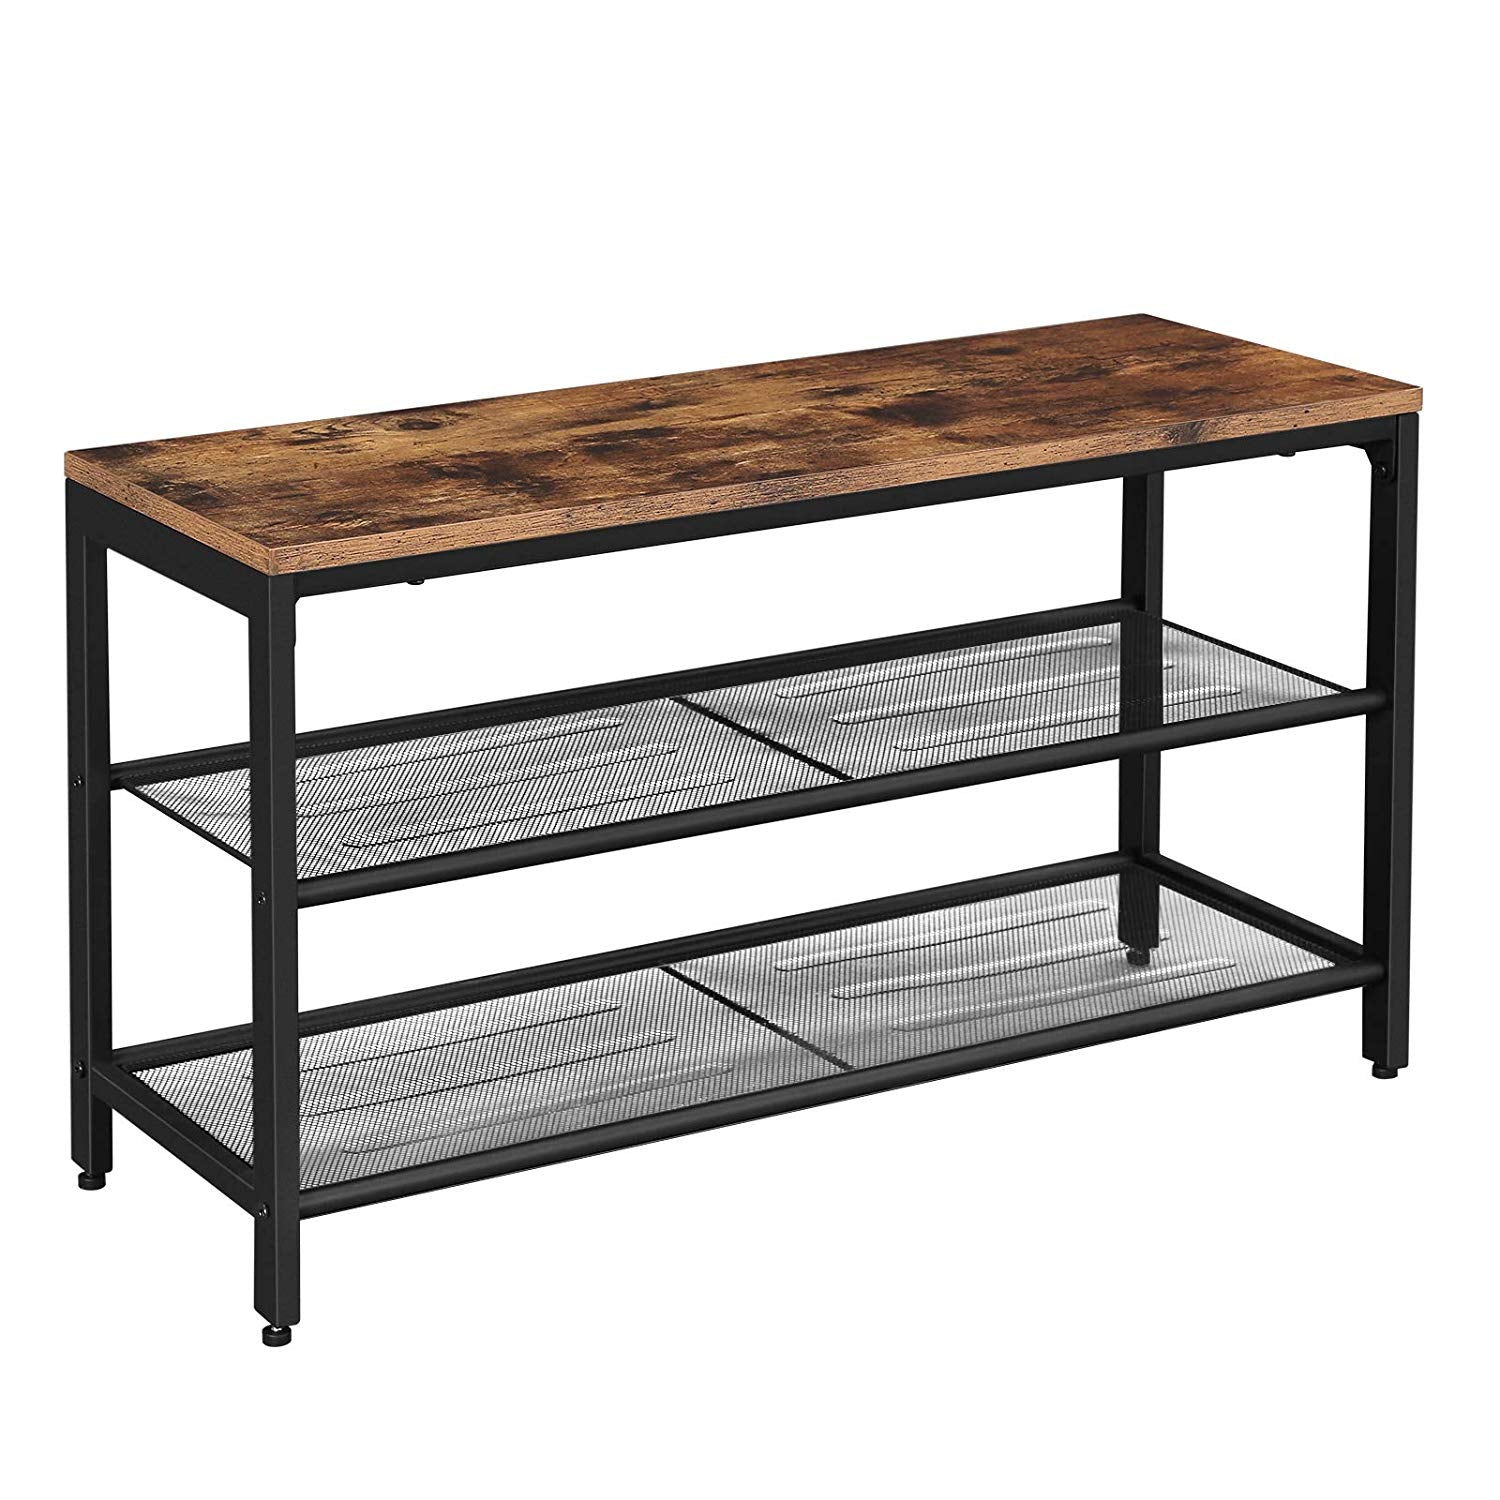 Enjoy fast, free nationwide shipping!  Family owned and operated, HawkinsWoodshop.com is your one stop shop for affordable furniture.  Shop HawkinsWoodshop.com for solid wood & metal modern, traditional, contemporary, industrial, custom, rustic, and farmhouse furniture including our Victor Industrial Shoe Bench.